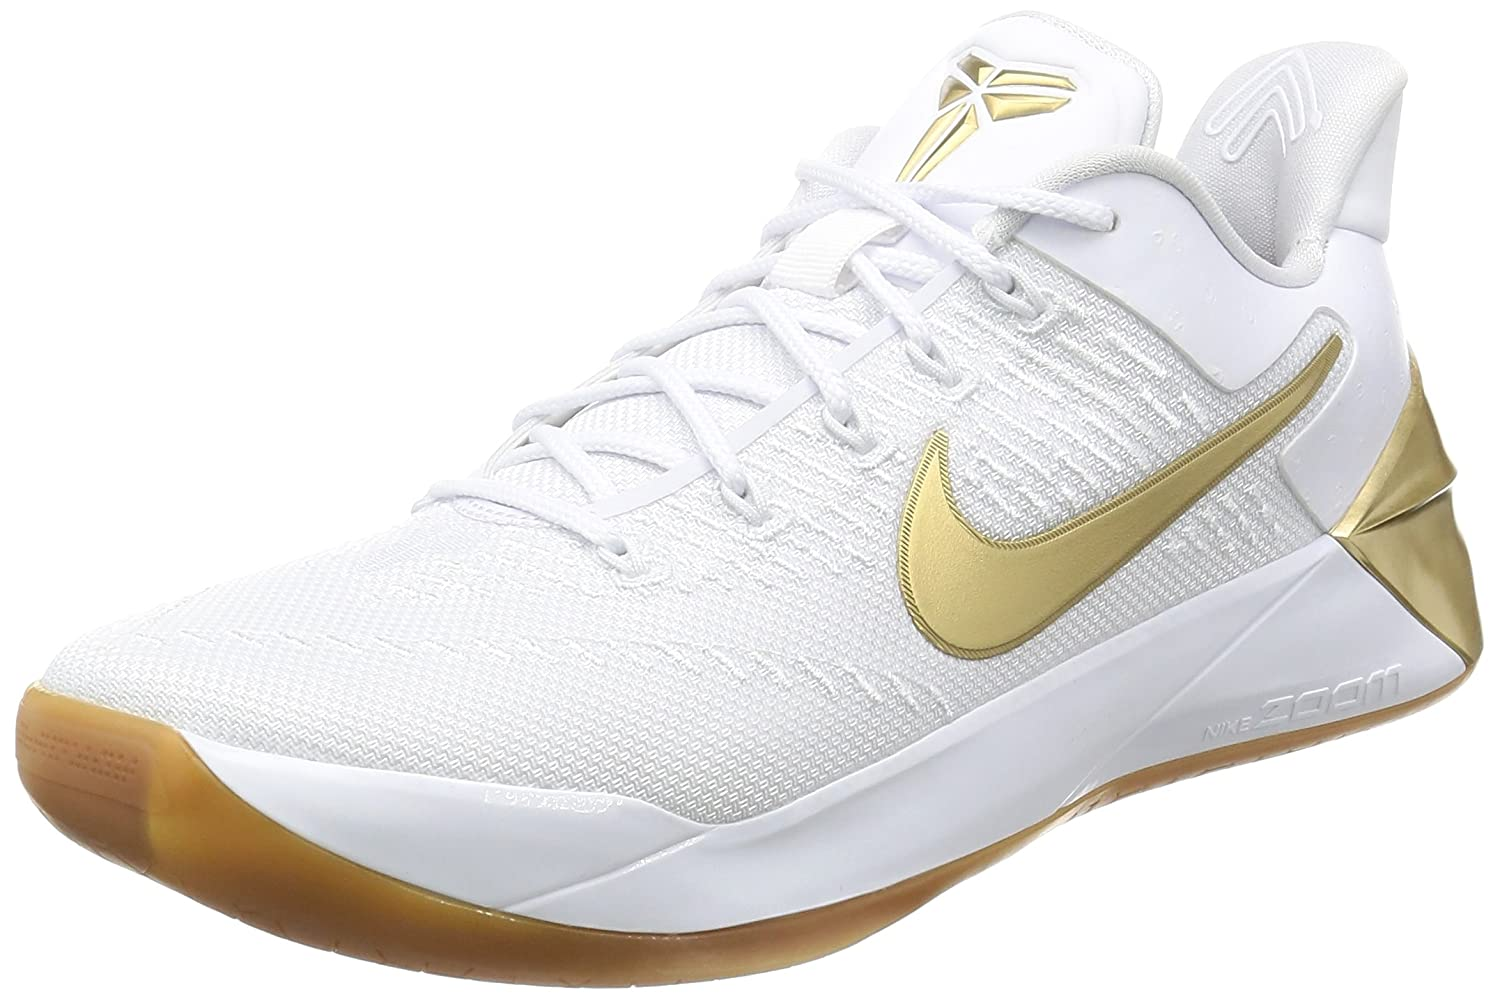 Nike Mens Kobe A.D. Basketball Shoes f467729bb8a5